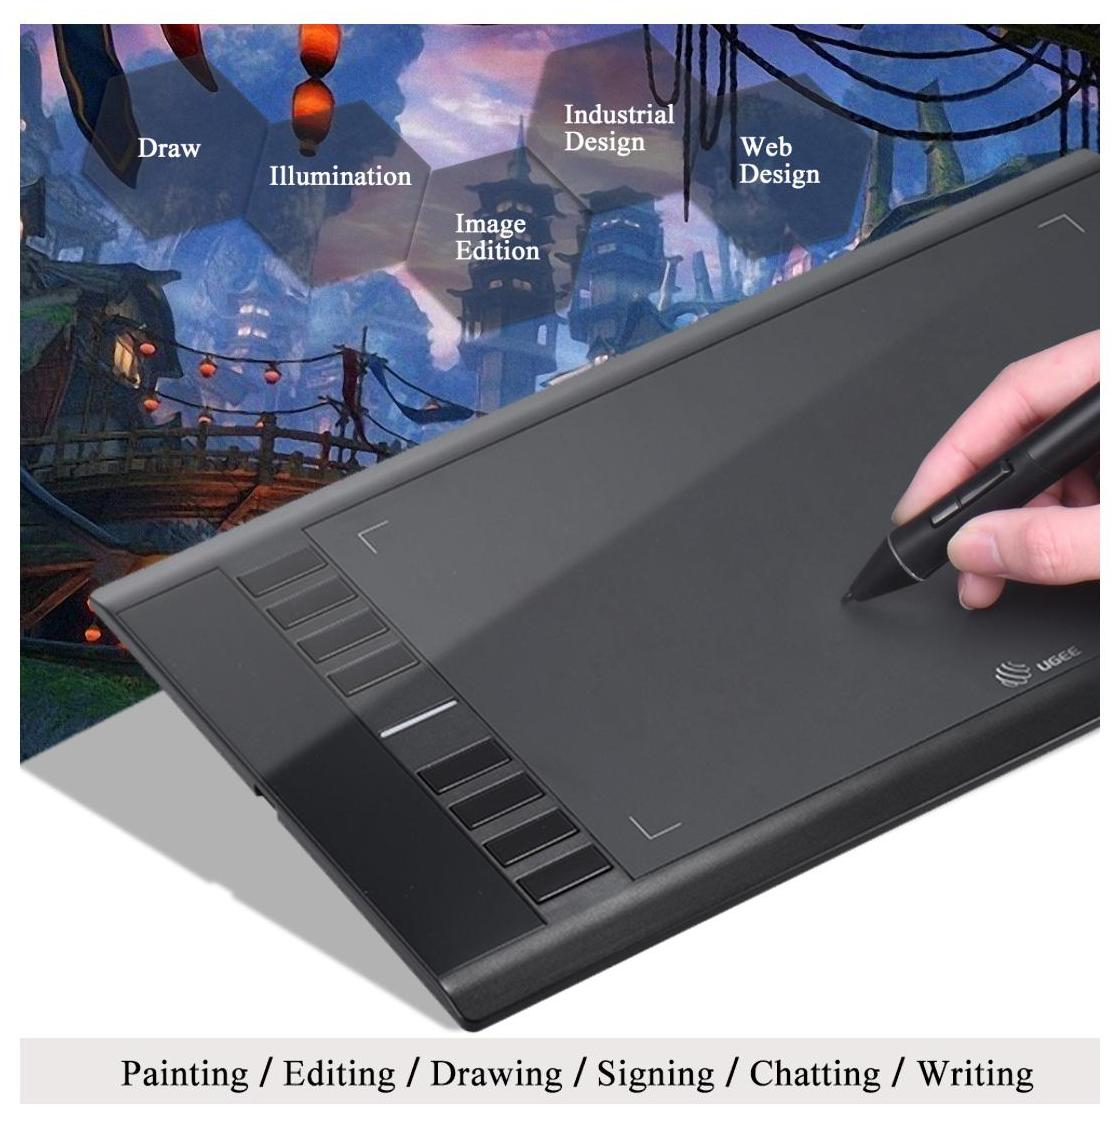 Ugee M708 Ultra-thin Draw Digital Graphics Drawing Painting Tablet Pad 10 *  6 Active Area 2048 Level Pressure Sensitivity